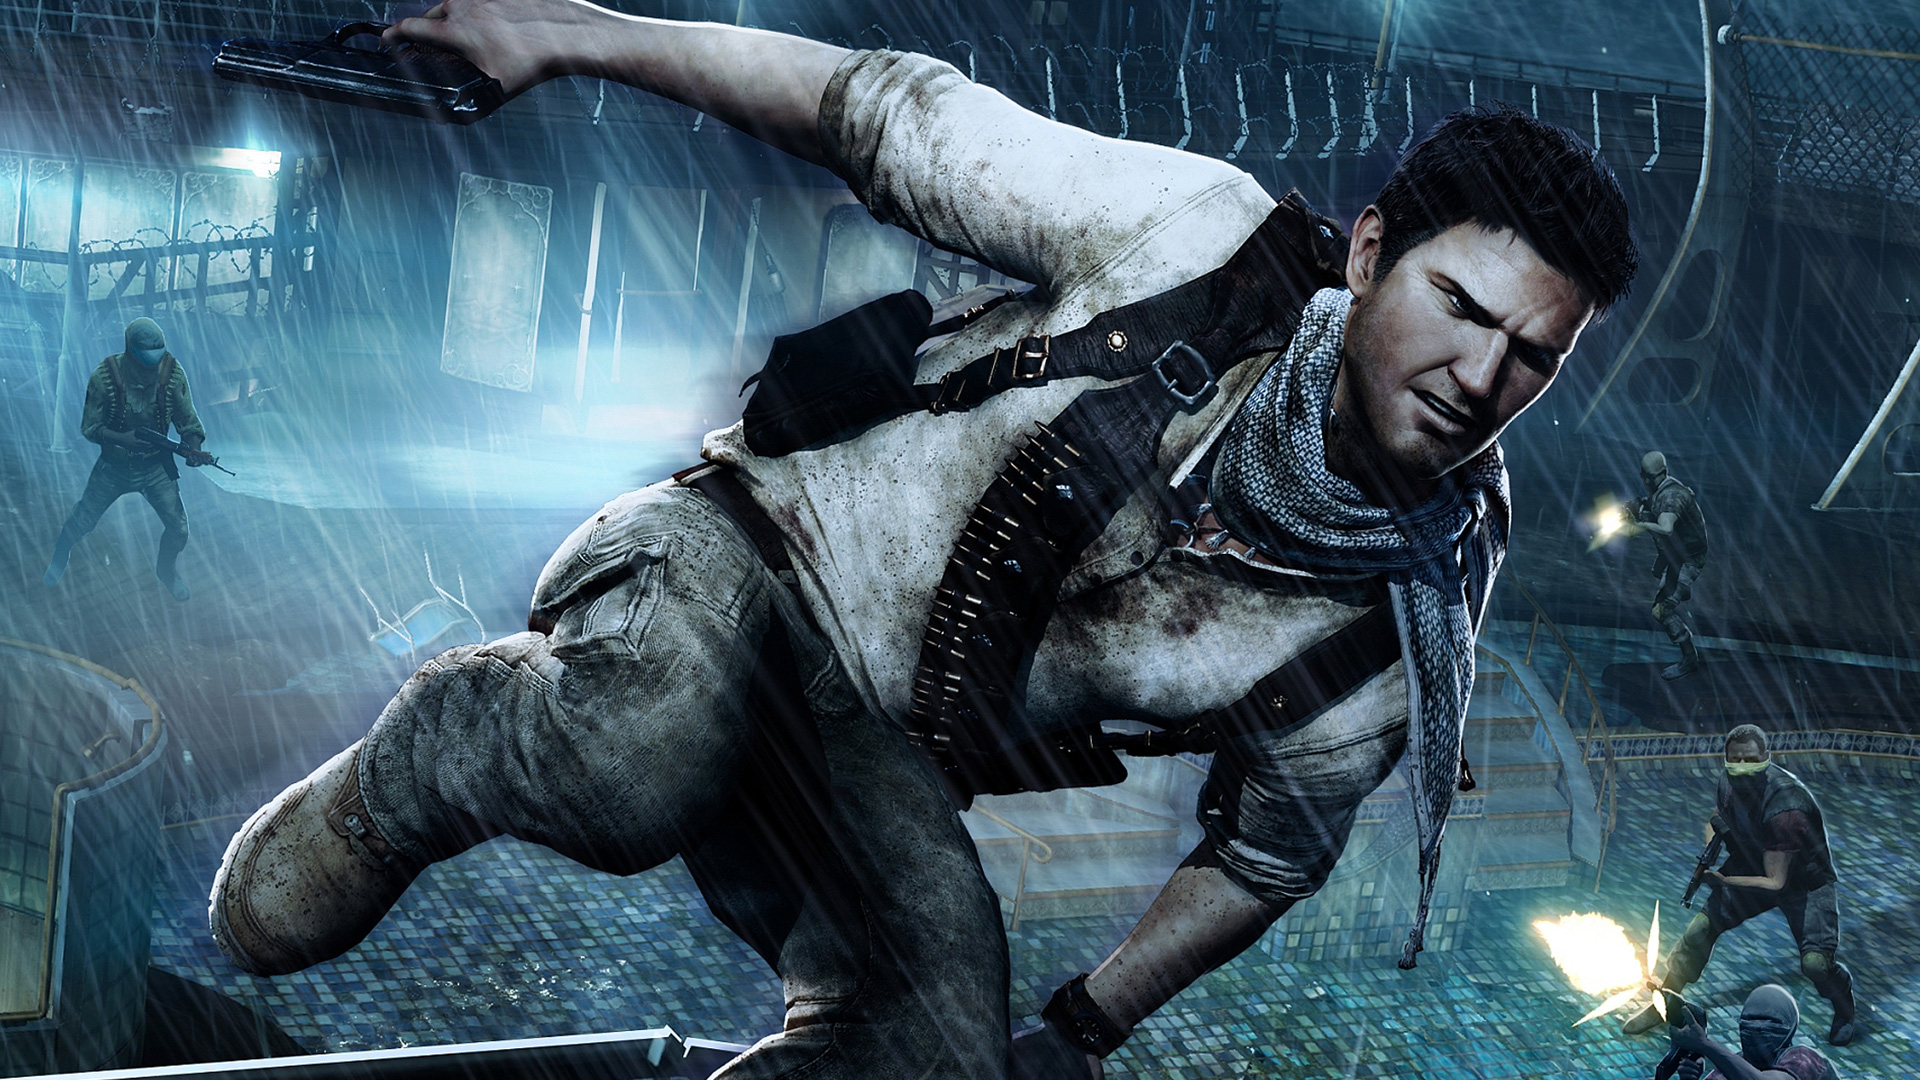 Uncharted 3 Drakes Deception wallpaper 7